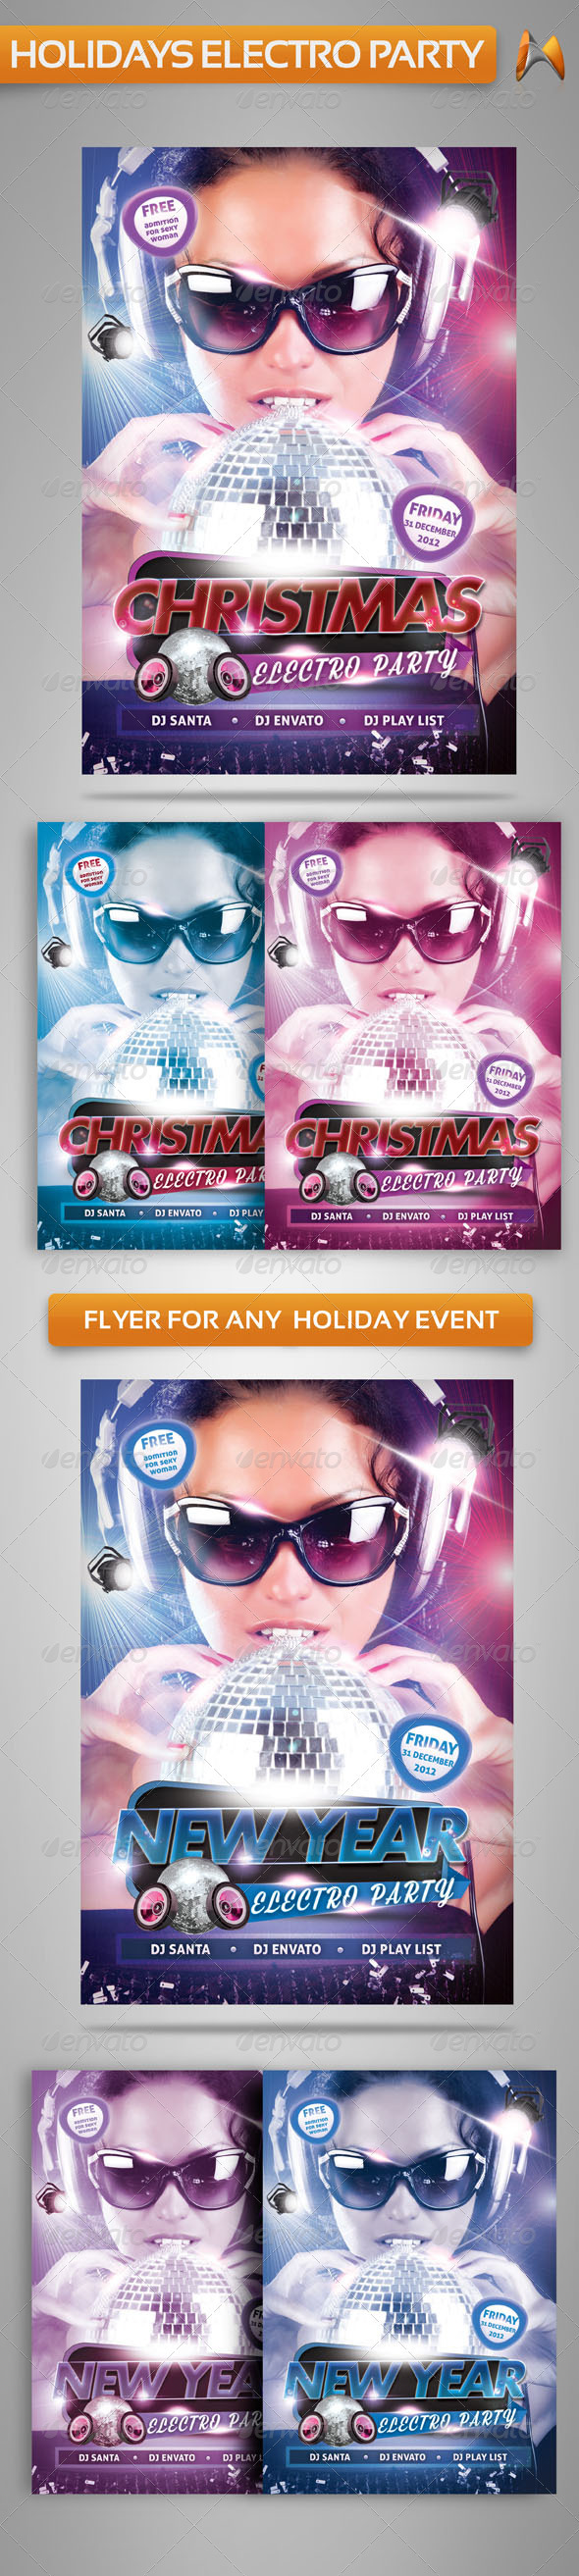 Electro Party Flyer Template - Clubs & Parties Events